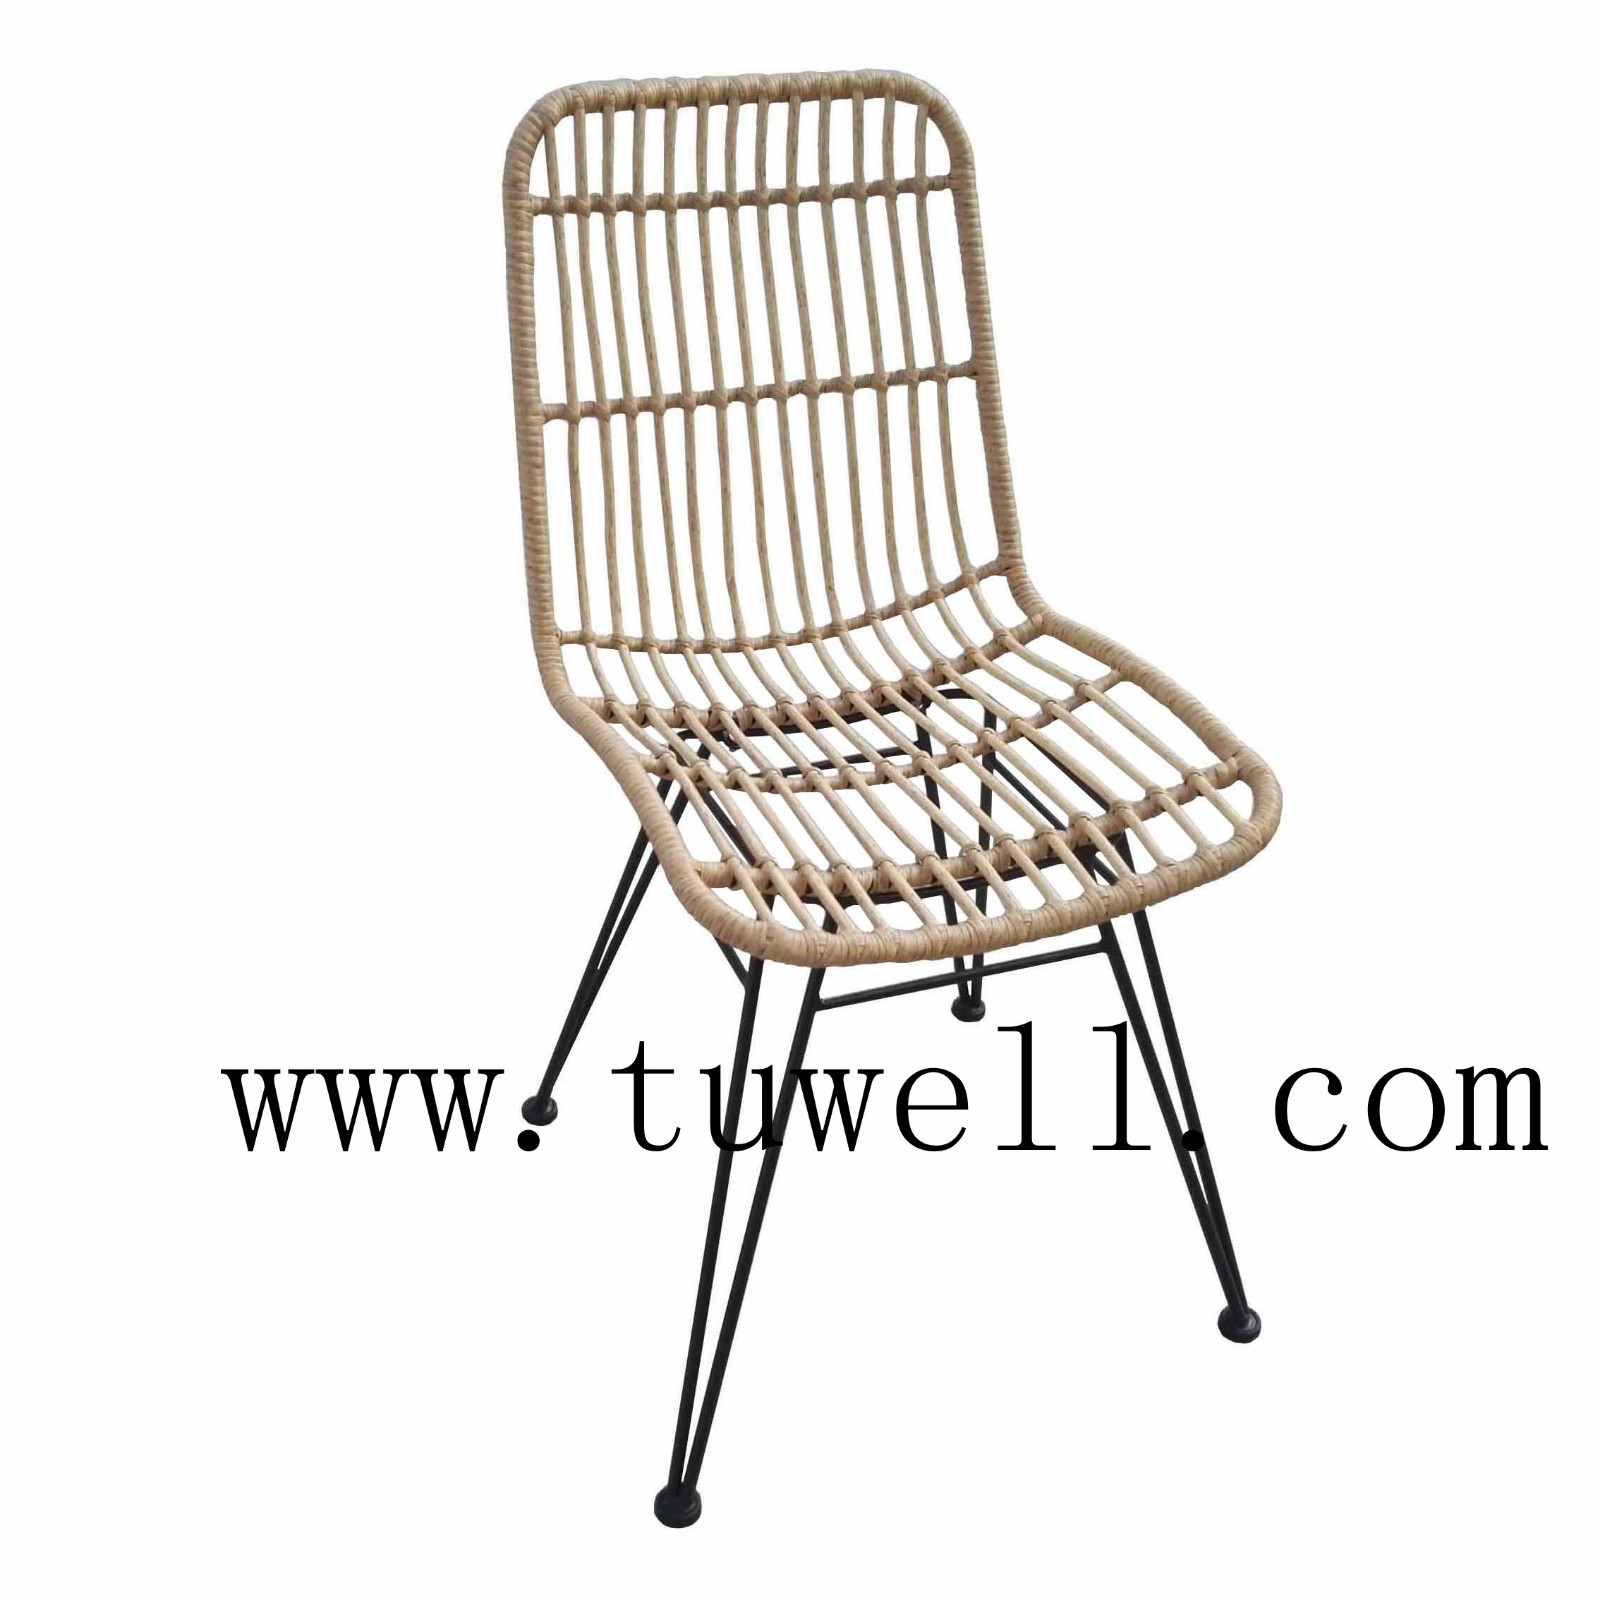 Tuwell-Find TW8708S Steel Rattan Chair-4